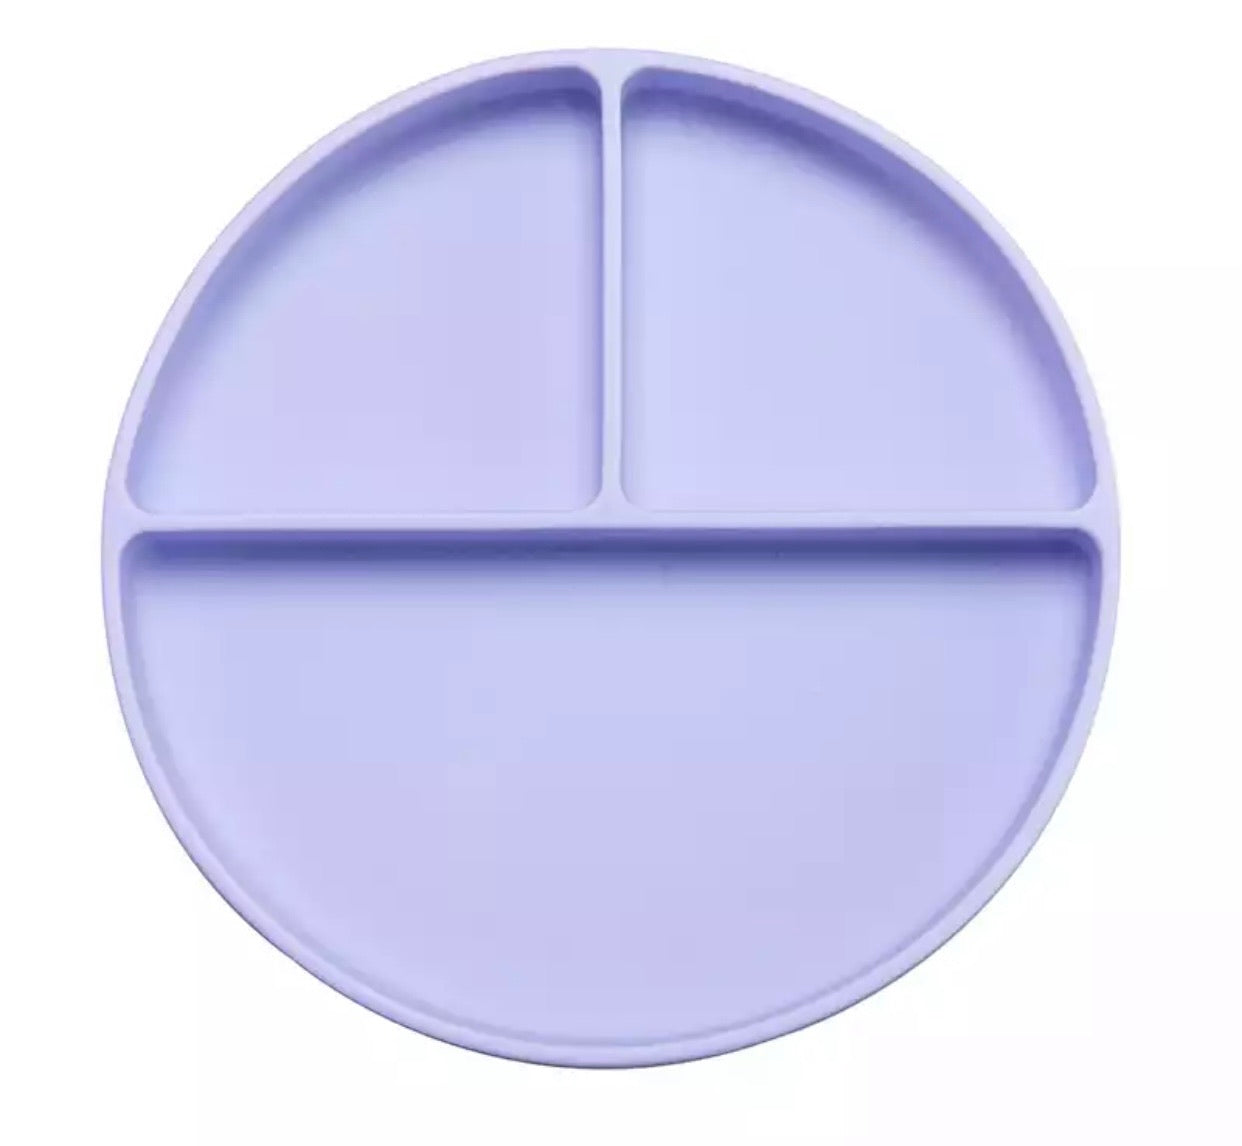 Silicone Suction Divider Plate | Lavender